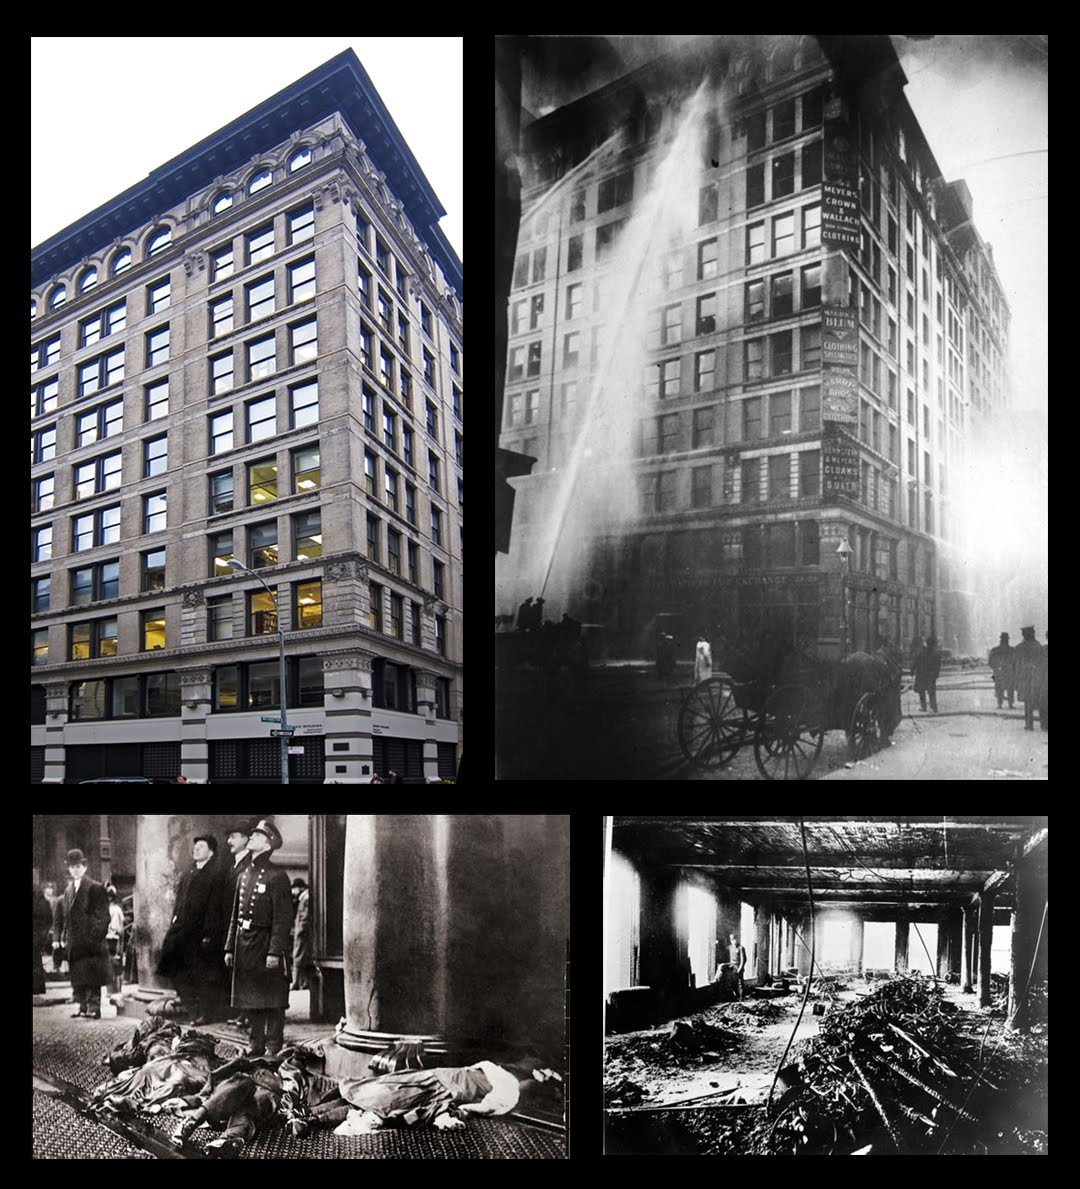 account of the triangle shirtwaist factory fire in new york In 1900 blanck and harris named their business the triangle shirtwaist factory factory fire in the history of new york triangle shirtwaist factory fire.